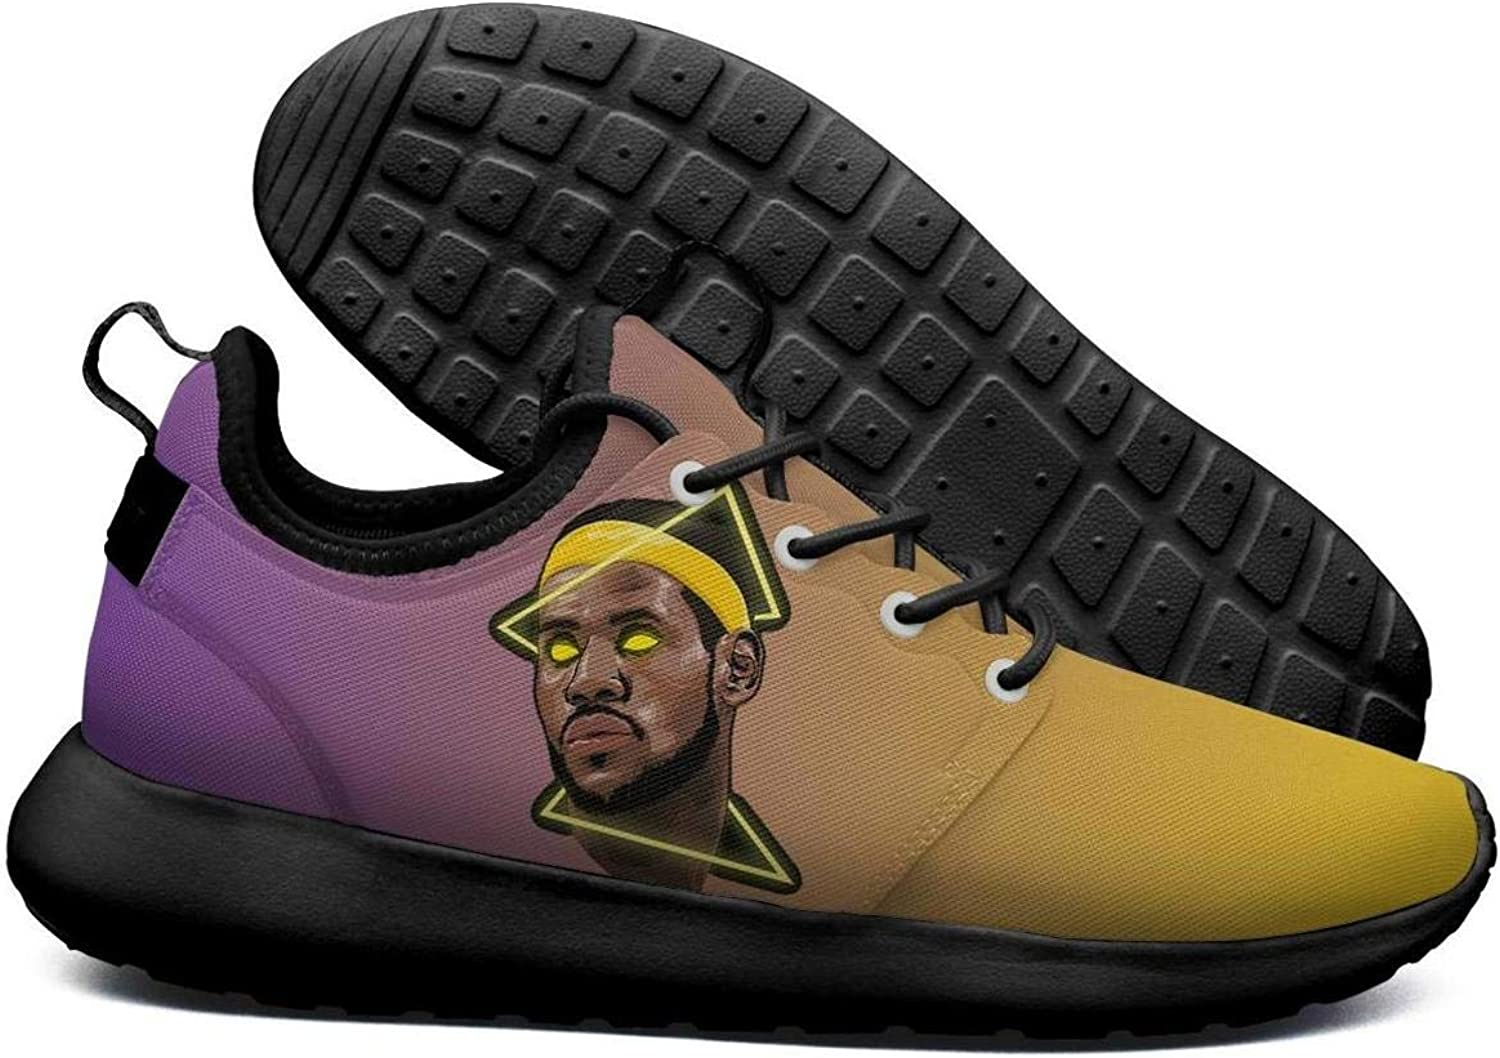 Womens Roshe Two Lightweight G.O.A.T 23 Yellow Goat Basketball Fashion Fashion Sneakers mesh shoes